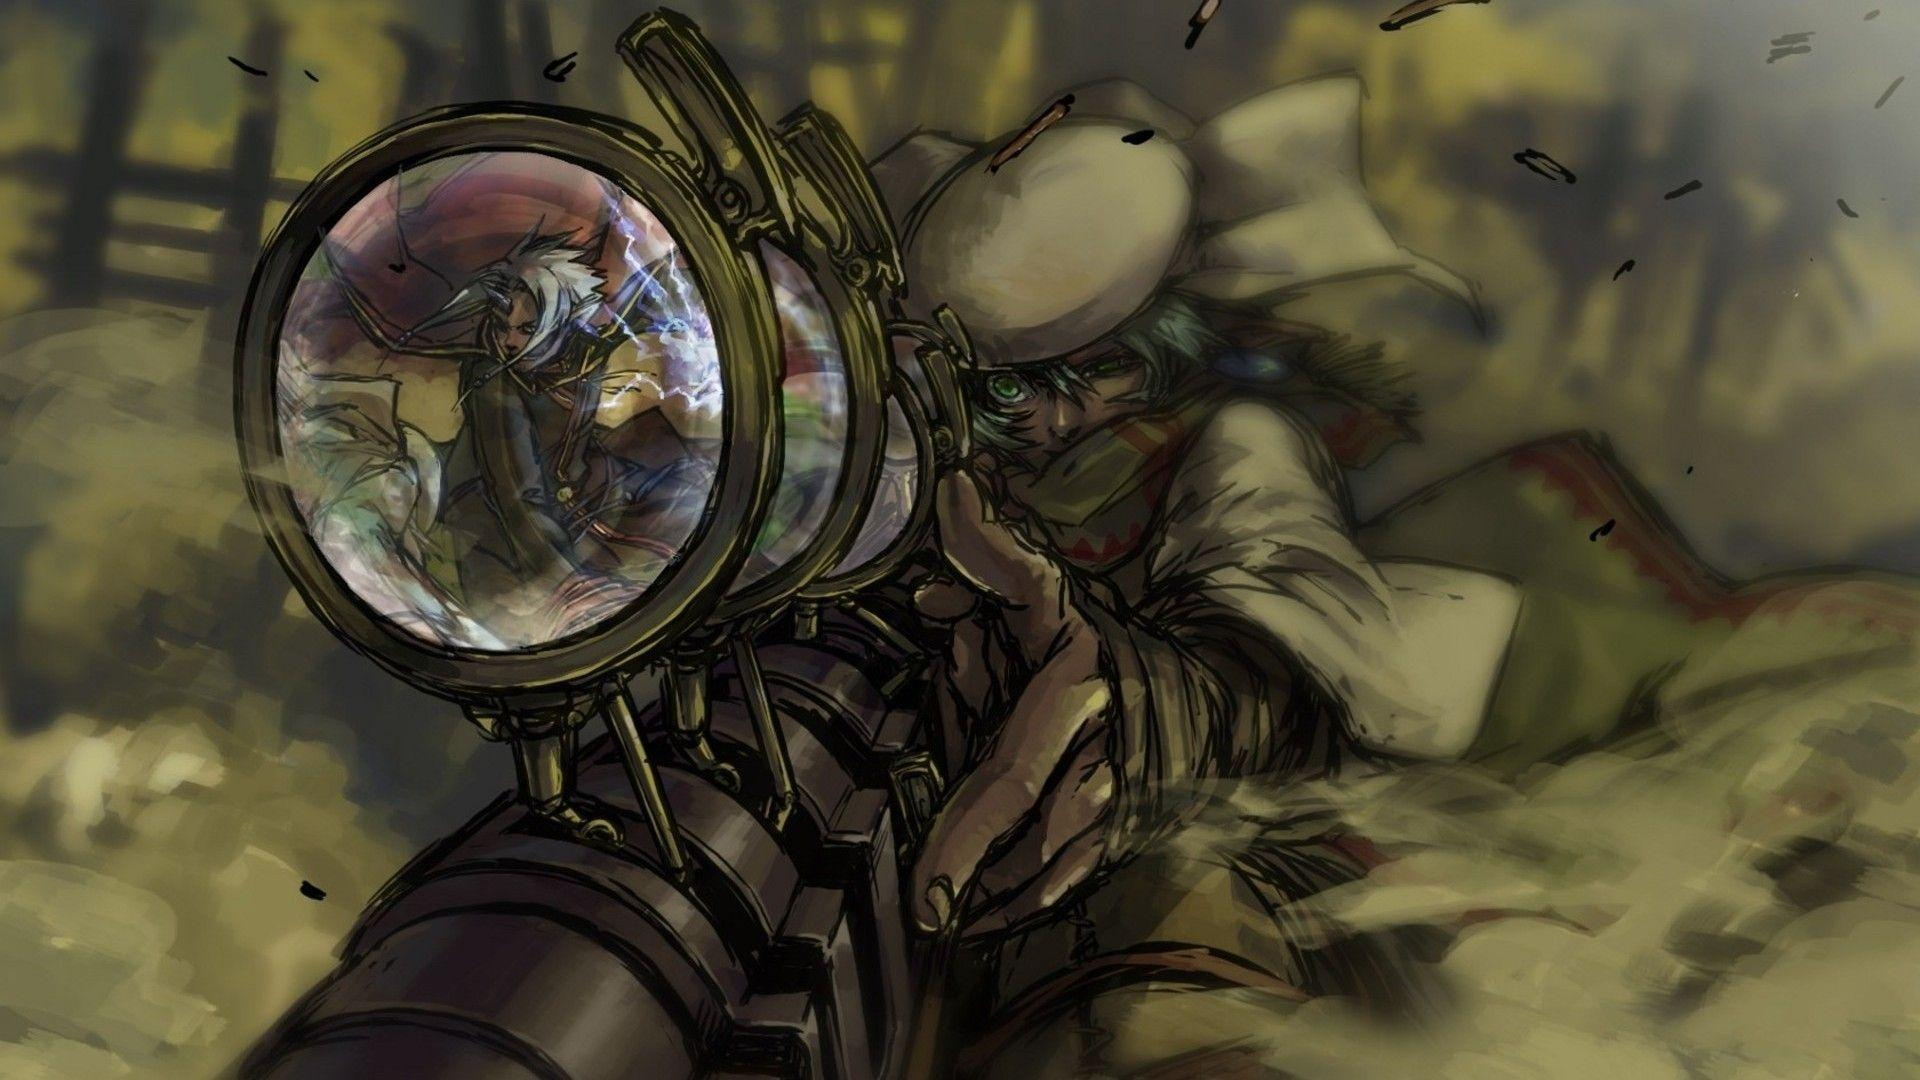 Steampunk Wallpapers 1920x1080 Wallpaper Cave